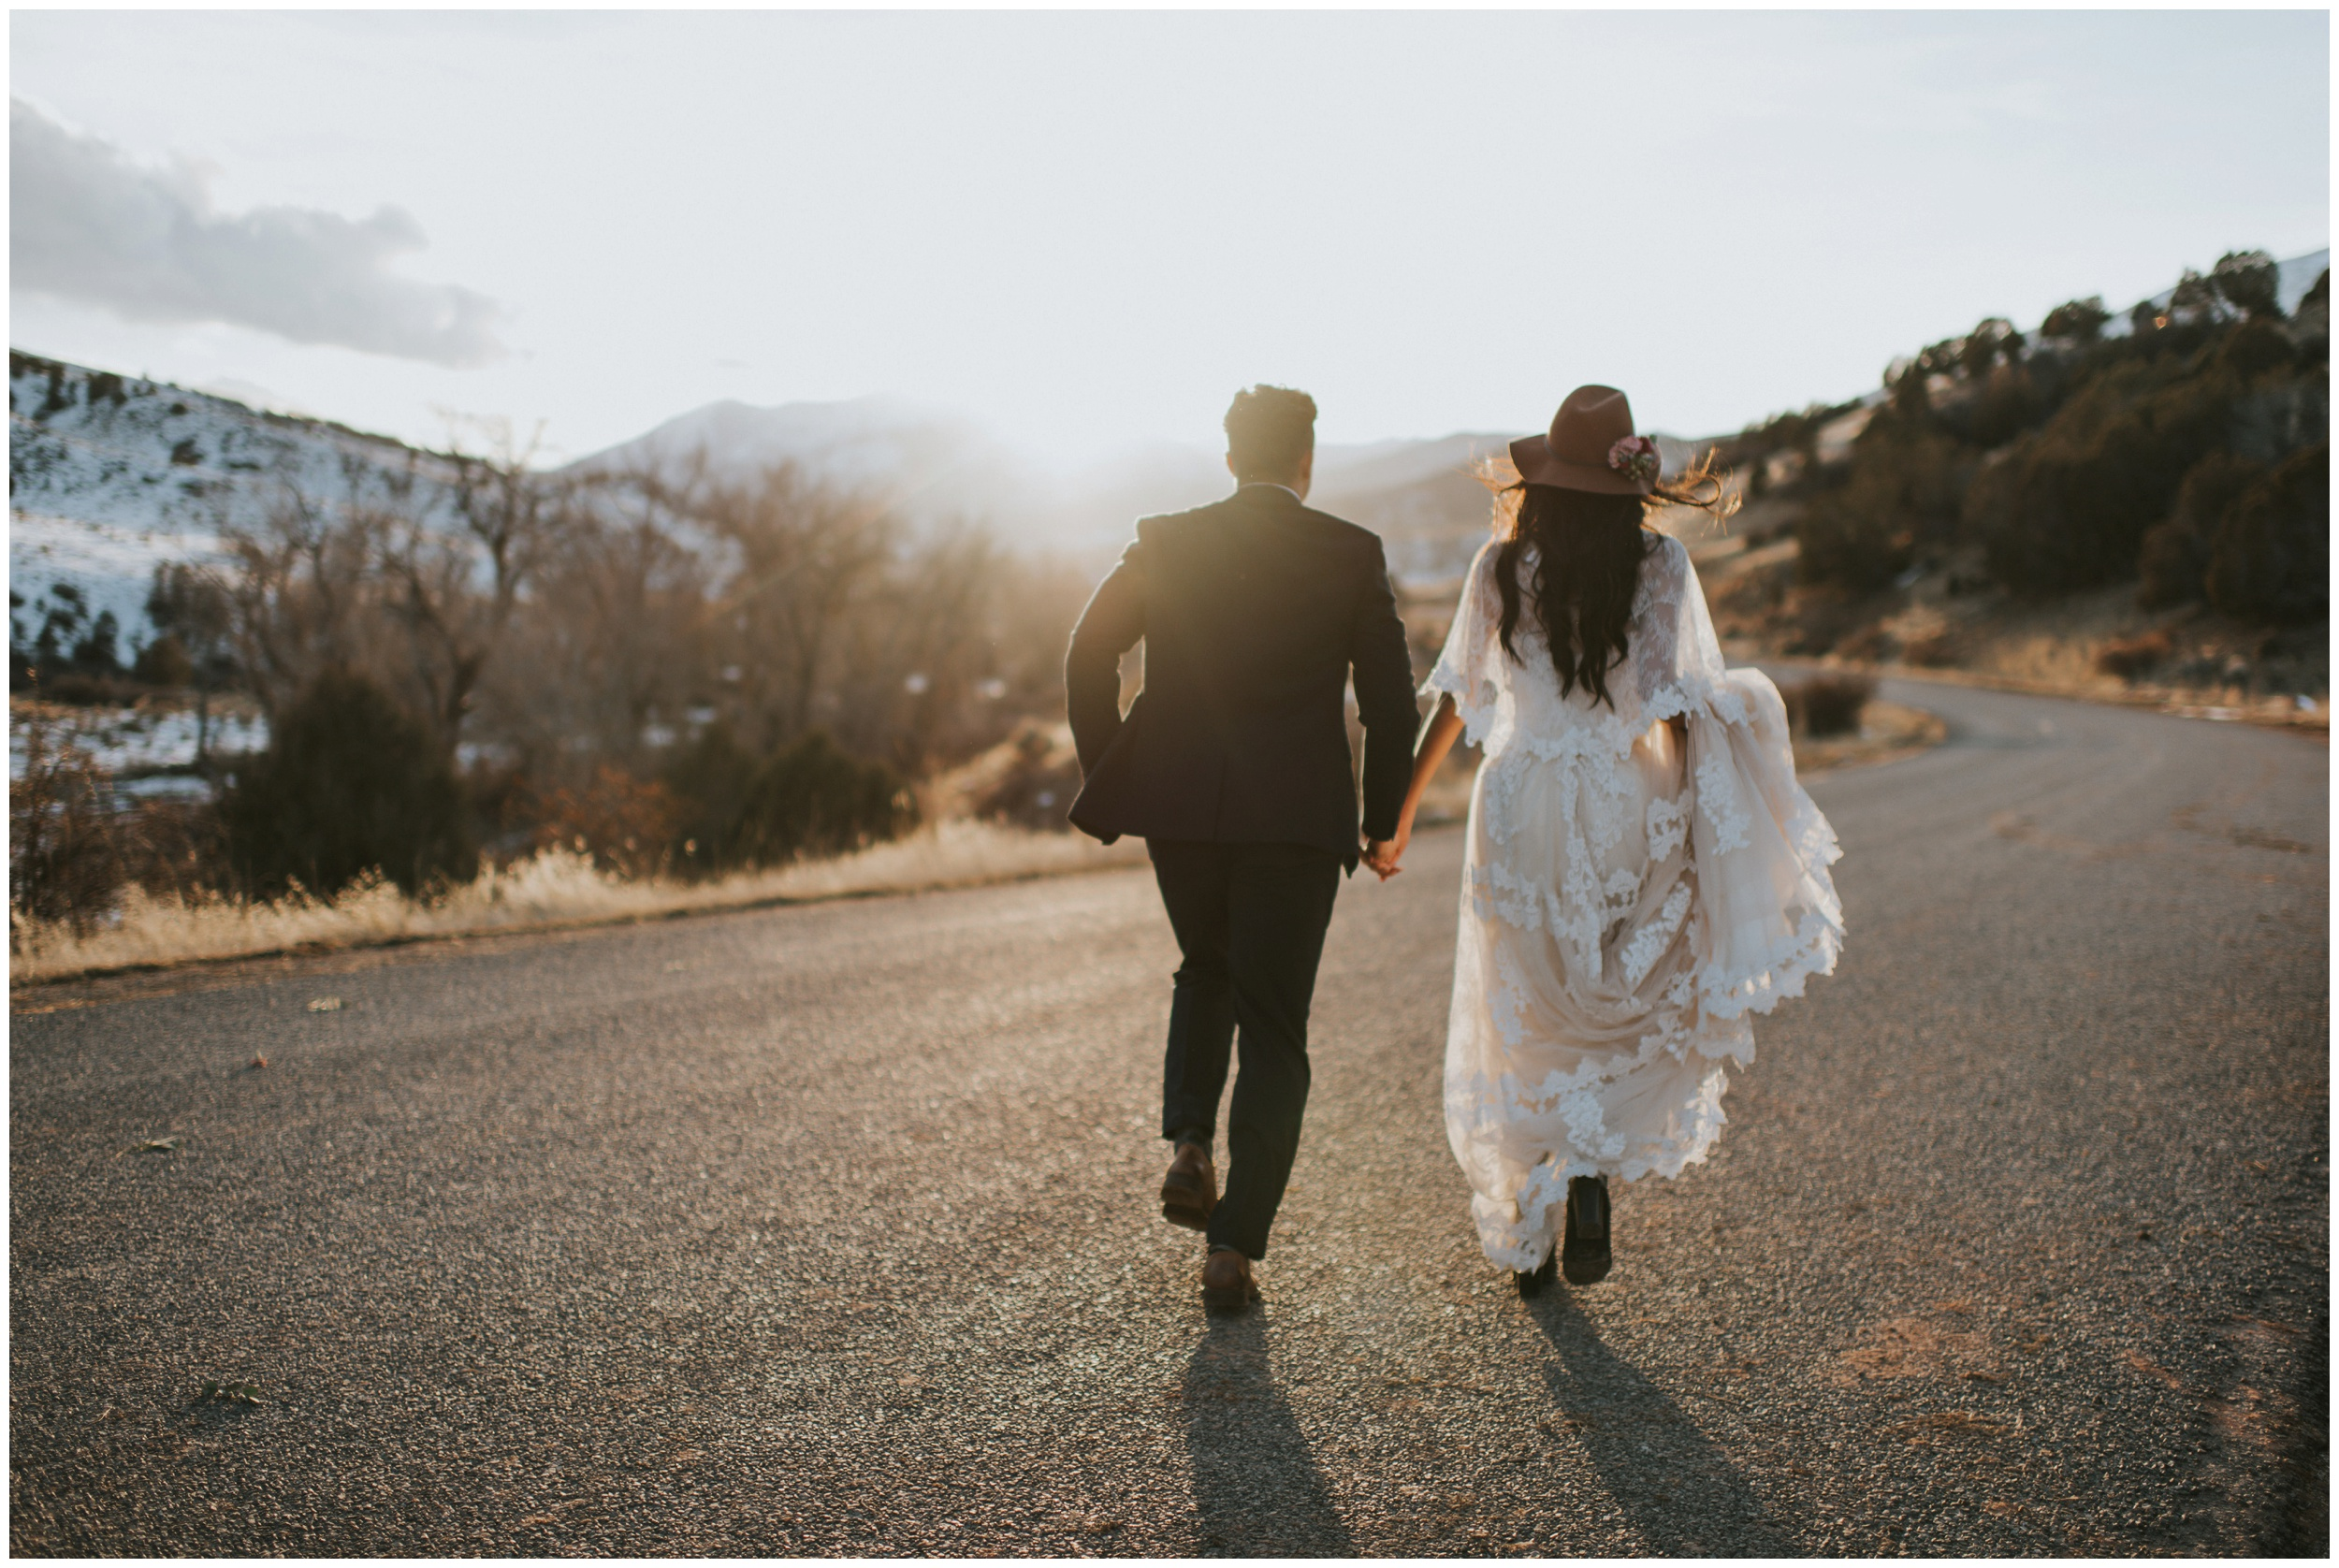 redrockutah-idahophotographer-utahphotographer-wedding-114.jpg